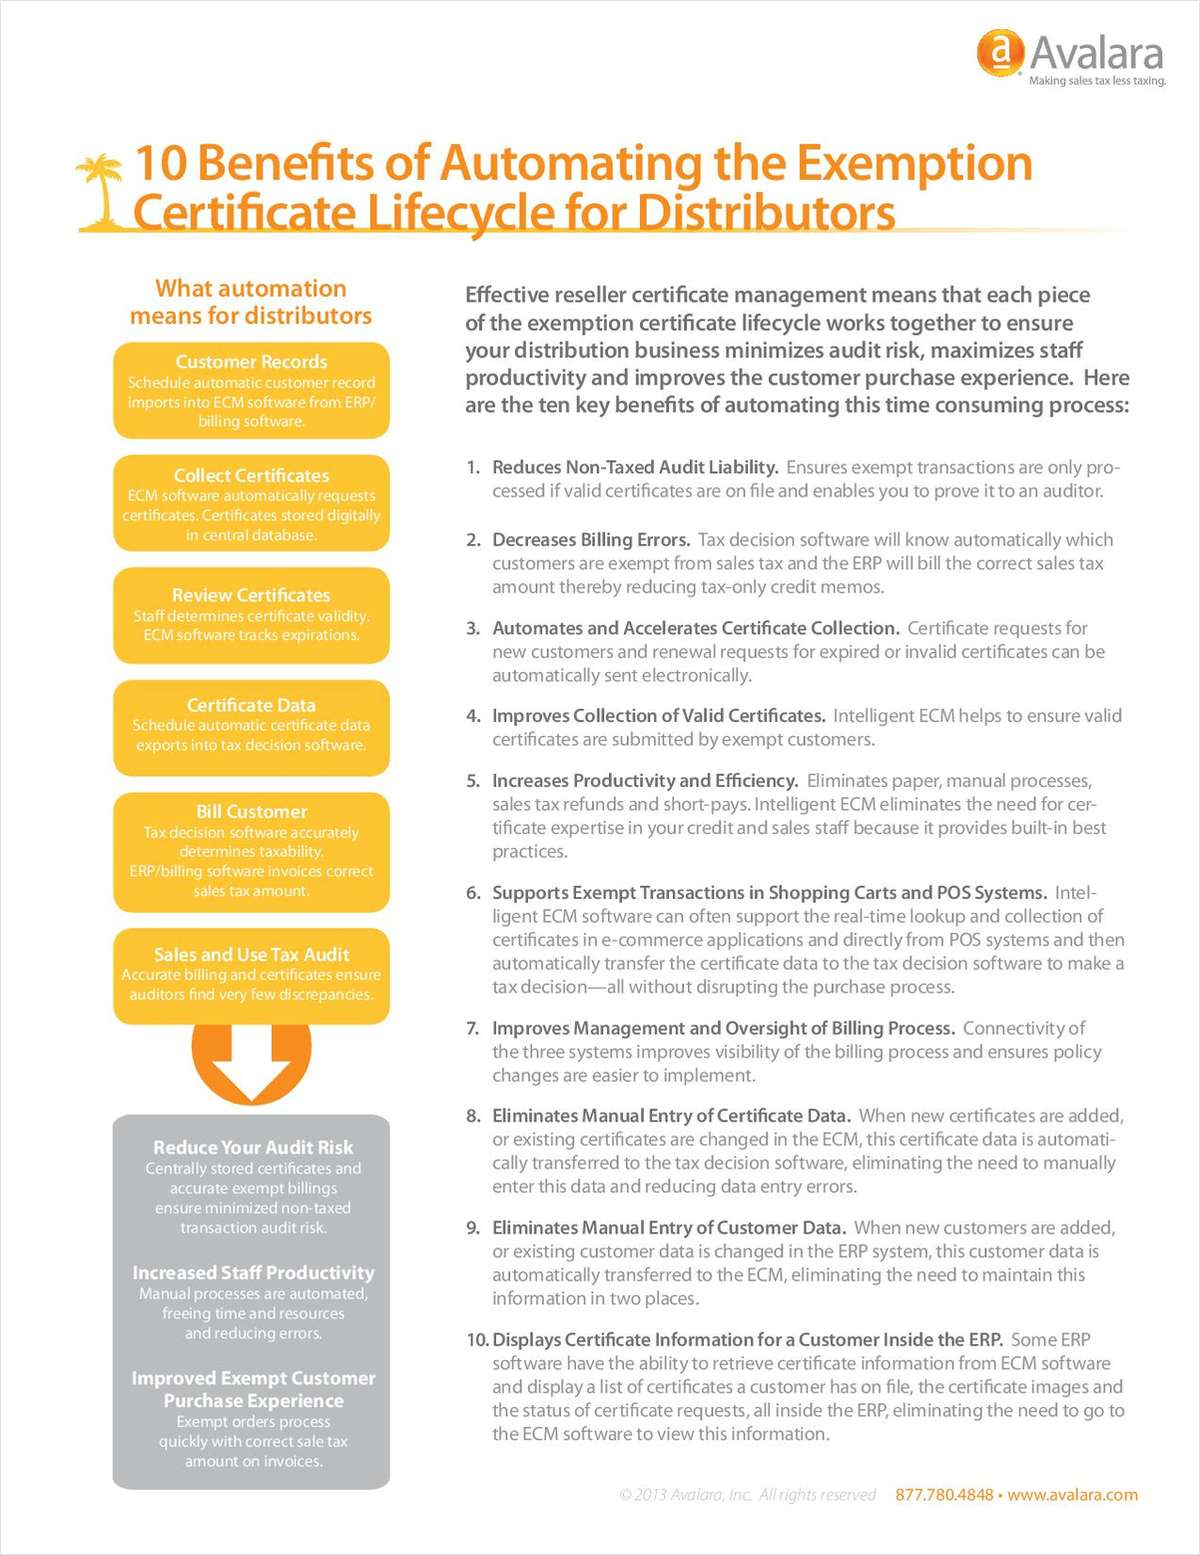 10 Benefits of Automating Exemption Certificates for Distributors